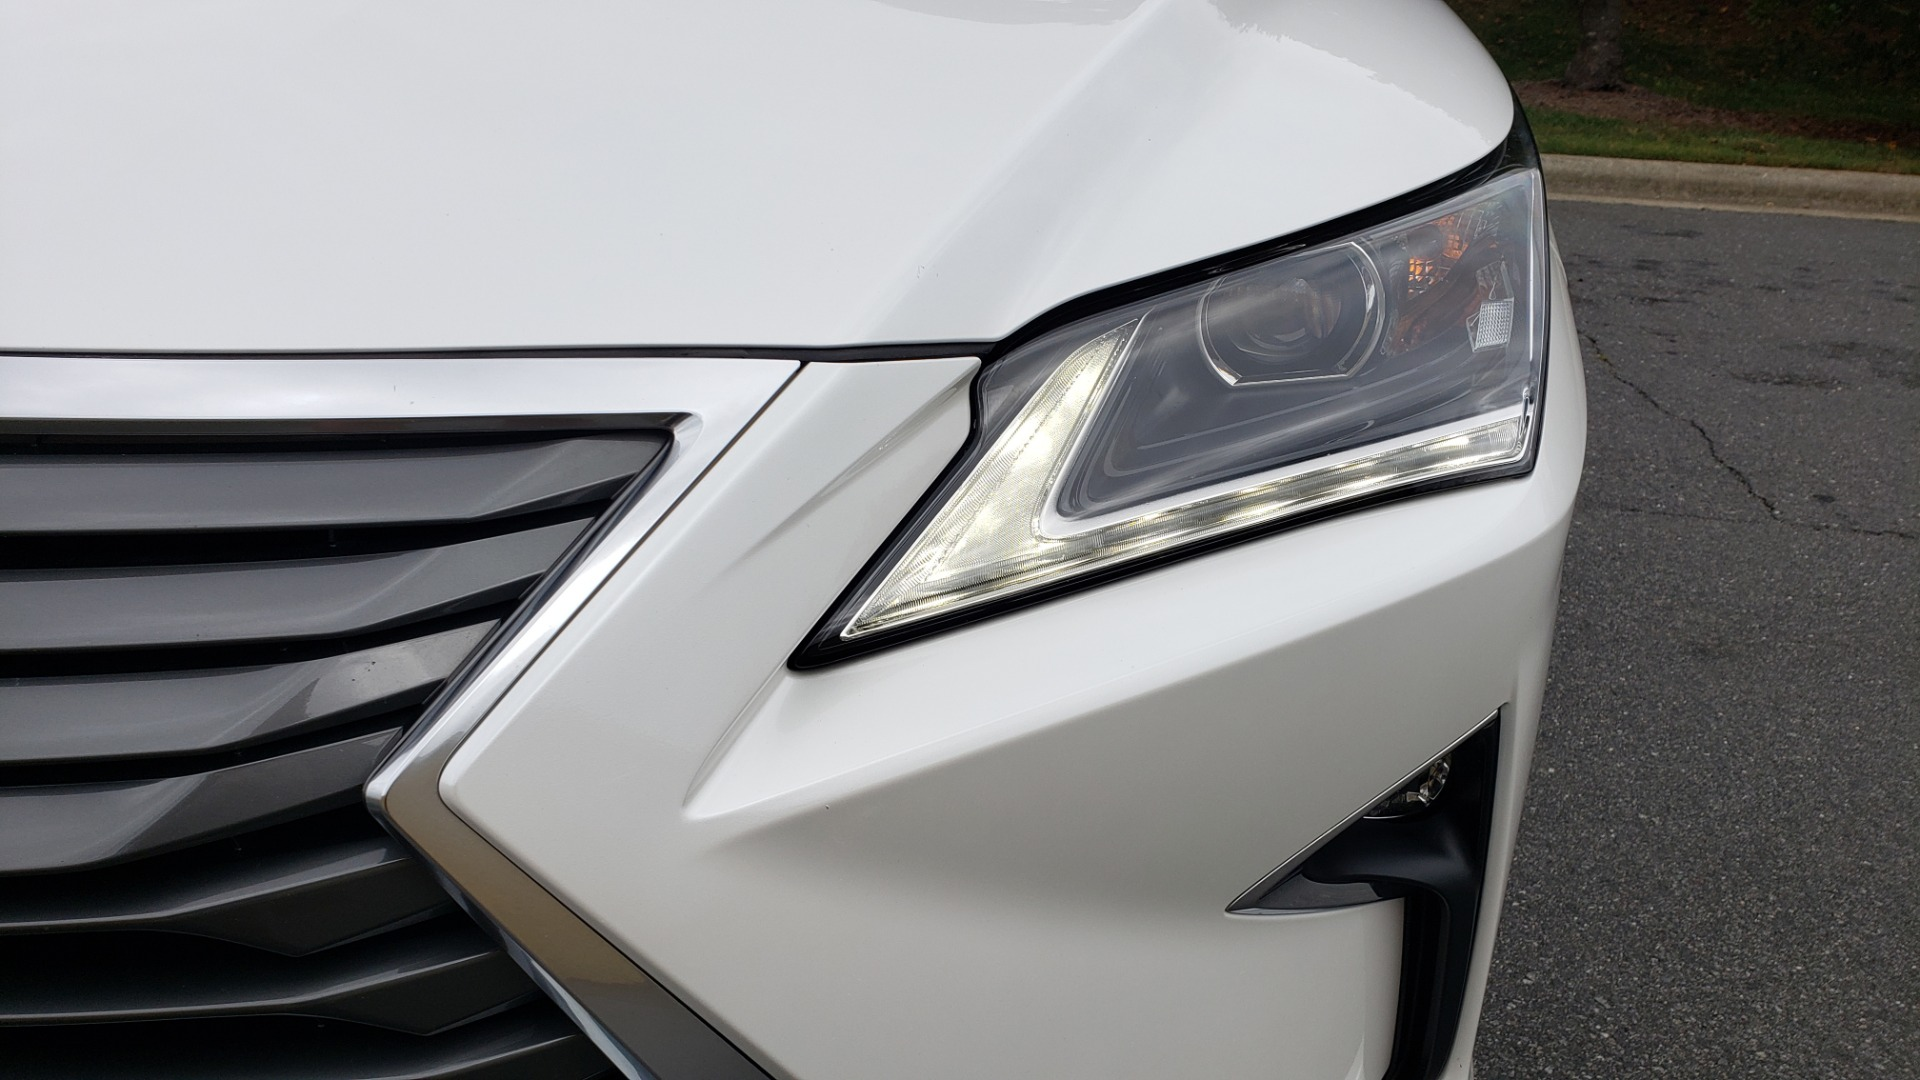 Used 2016 Lexus RX 350 FWD / 4-DR / 3.5L V6 / 8-SPD AUTO / LEATHER / REARVIEW for sale $31,995 at Formula Imports in Charlotte NC 28227 25